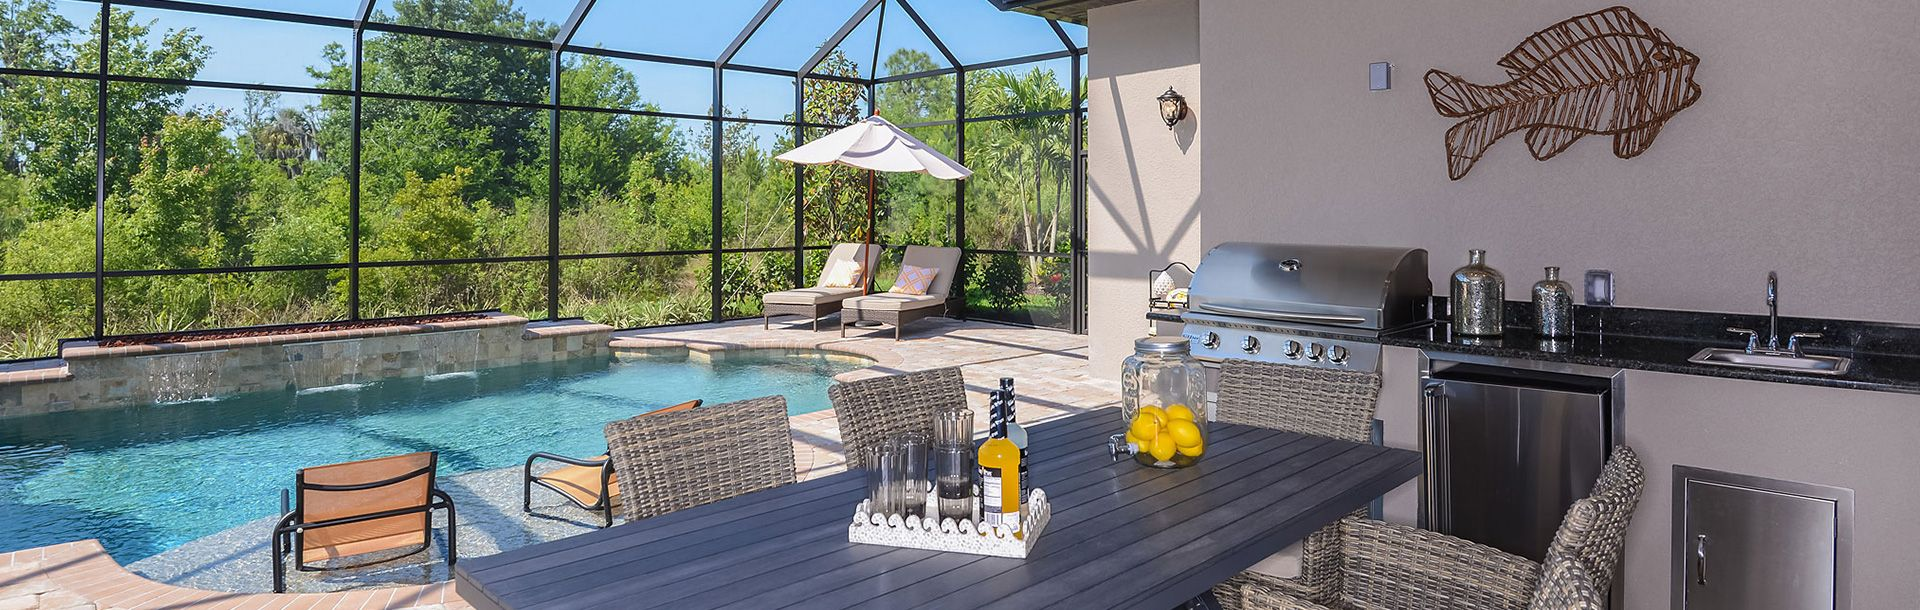 Outdoor Kitchen and Pool Backyard pool, Pool cover